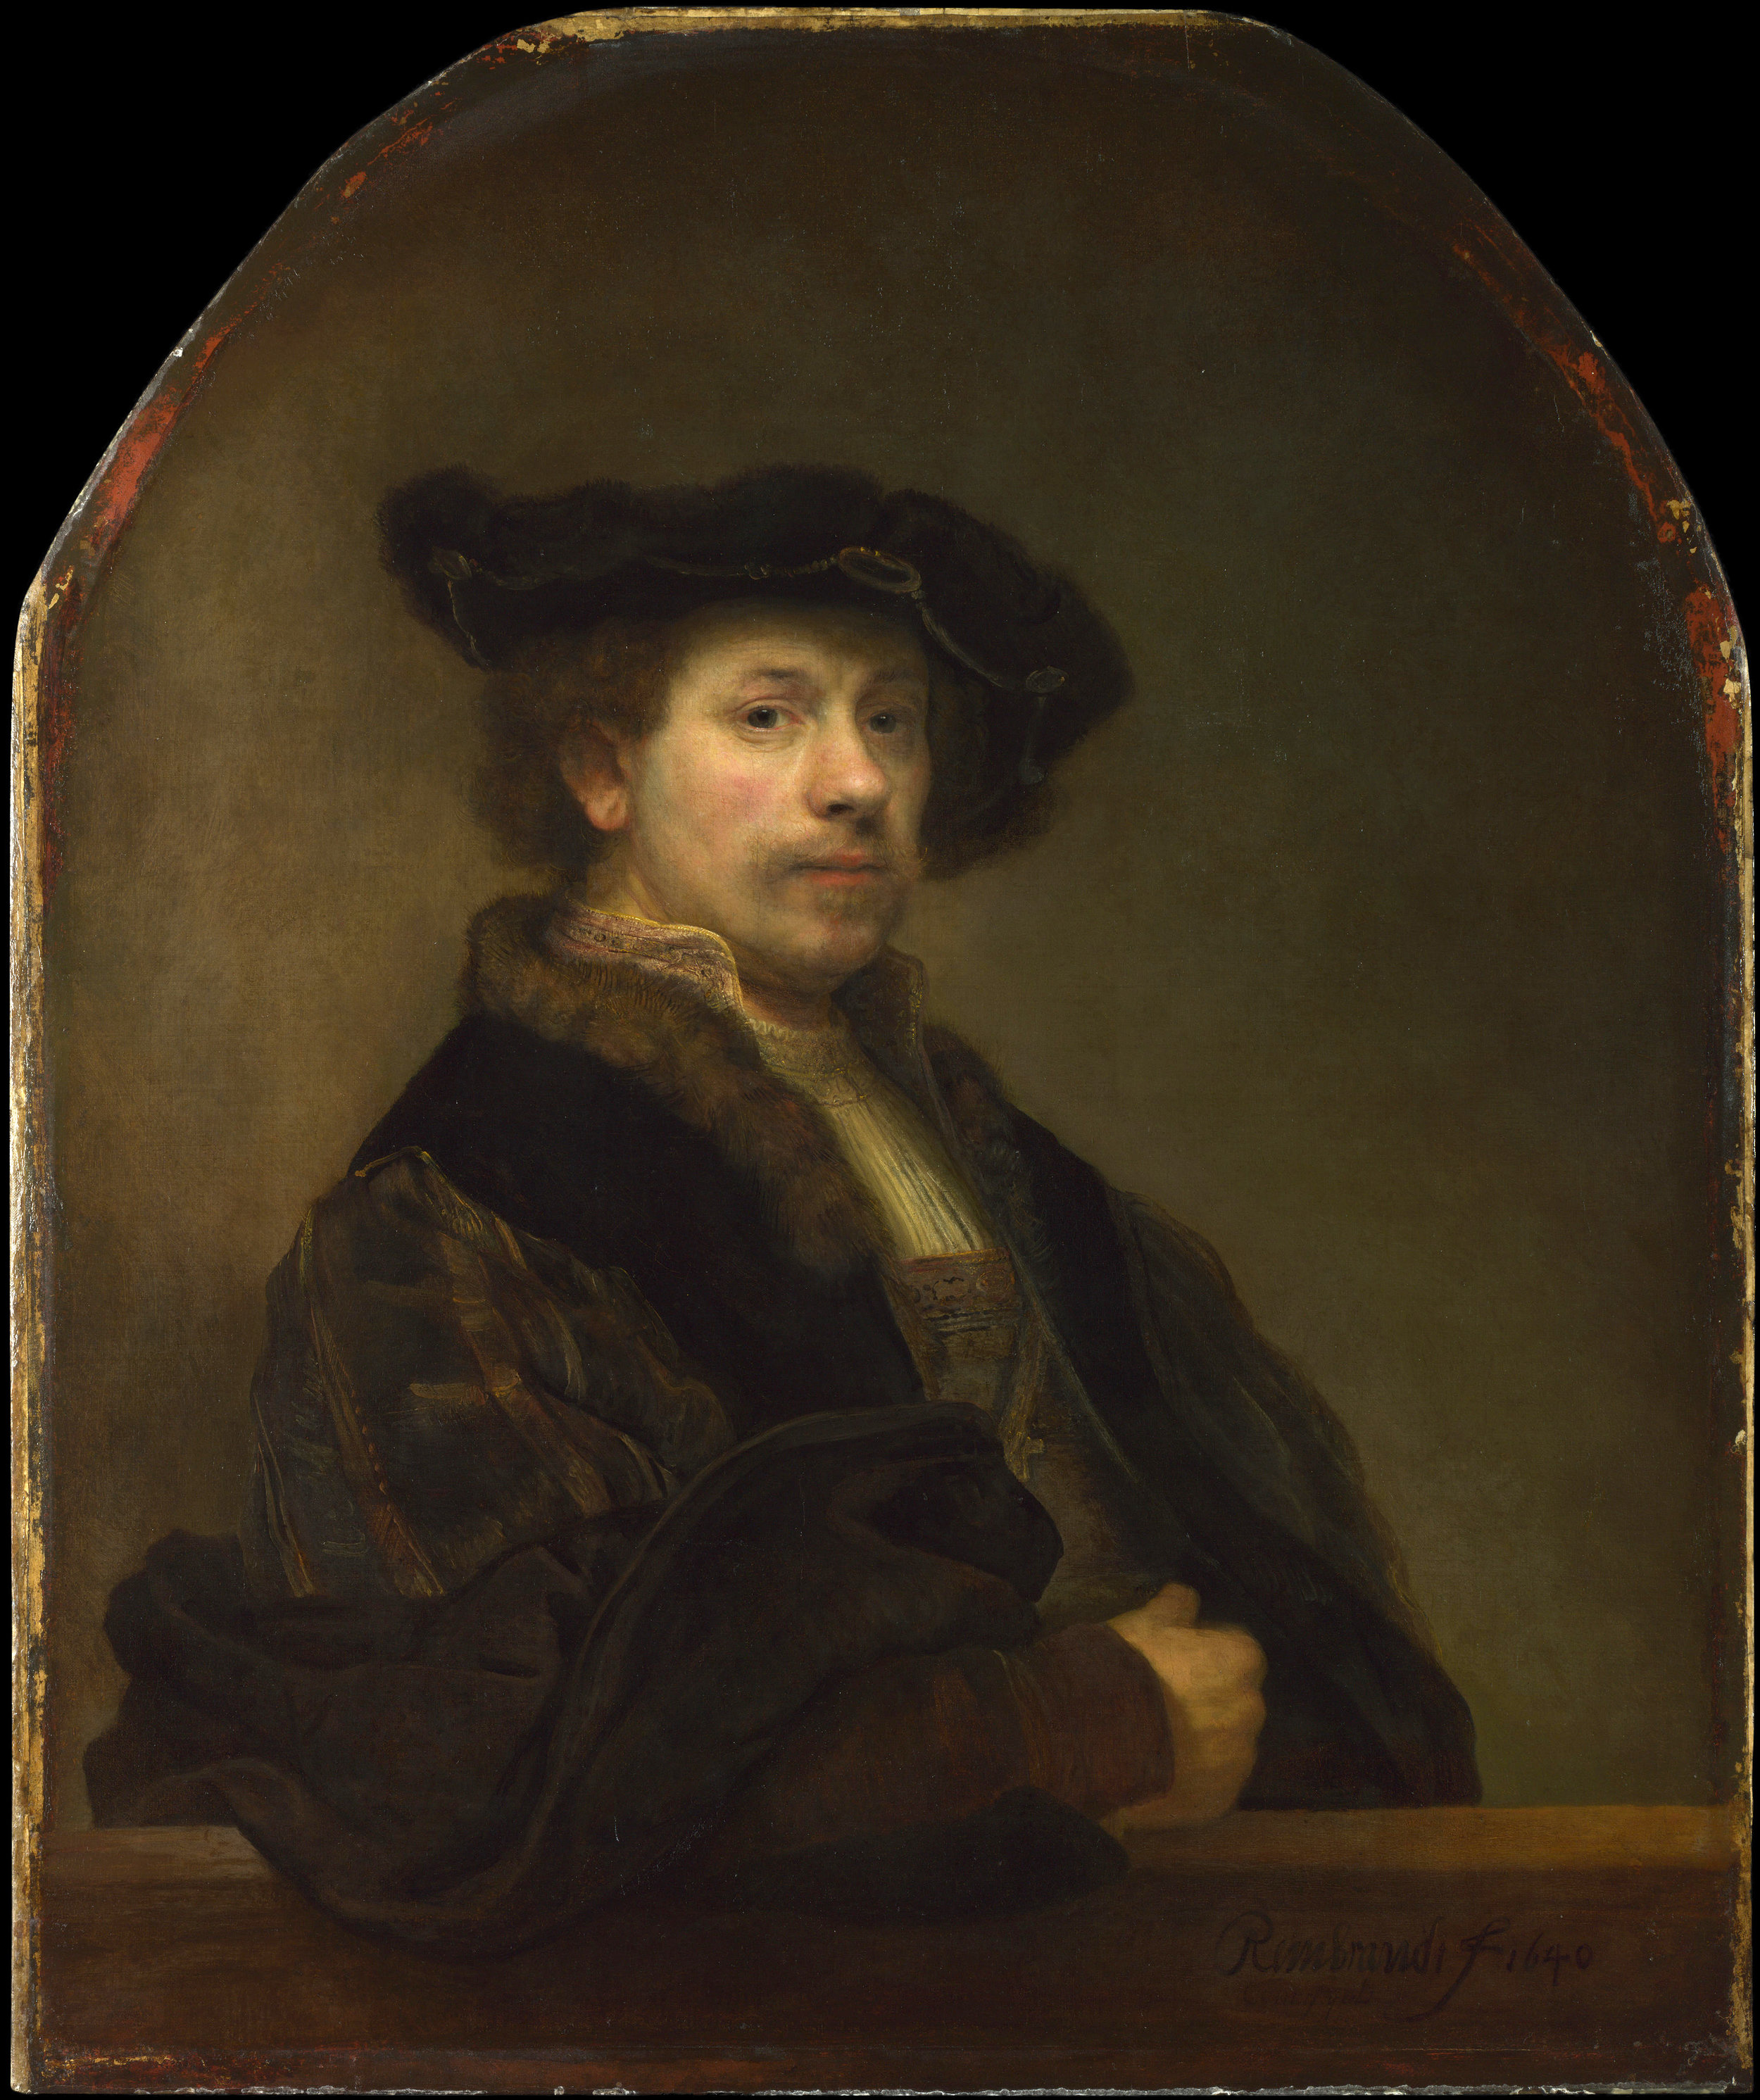 Rembrandt,_Self_Portrait_at_the_Age_of_34.jpg